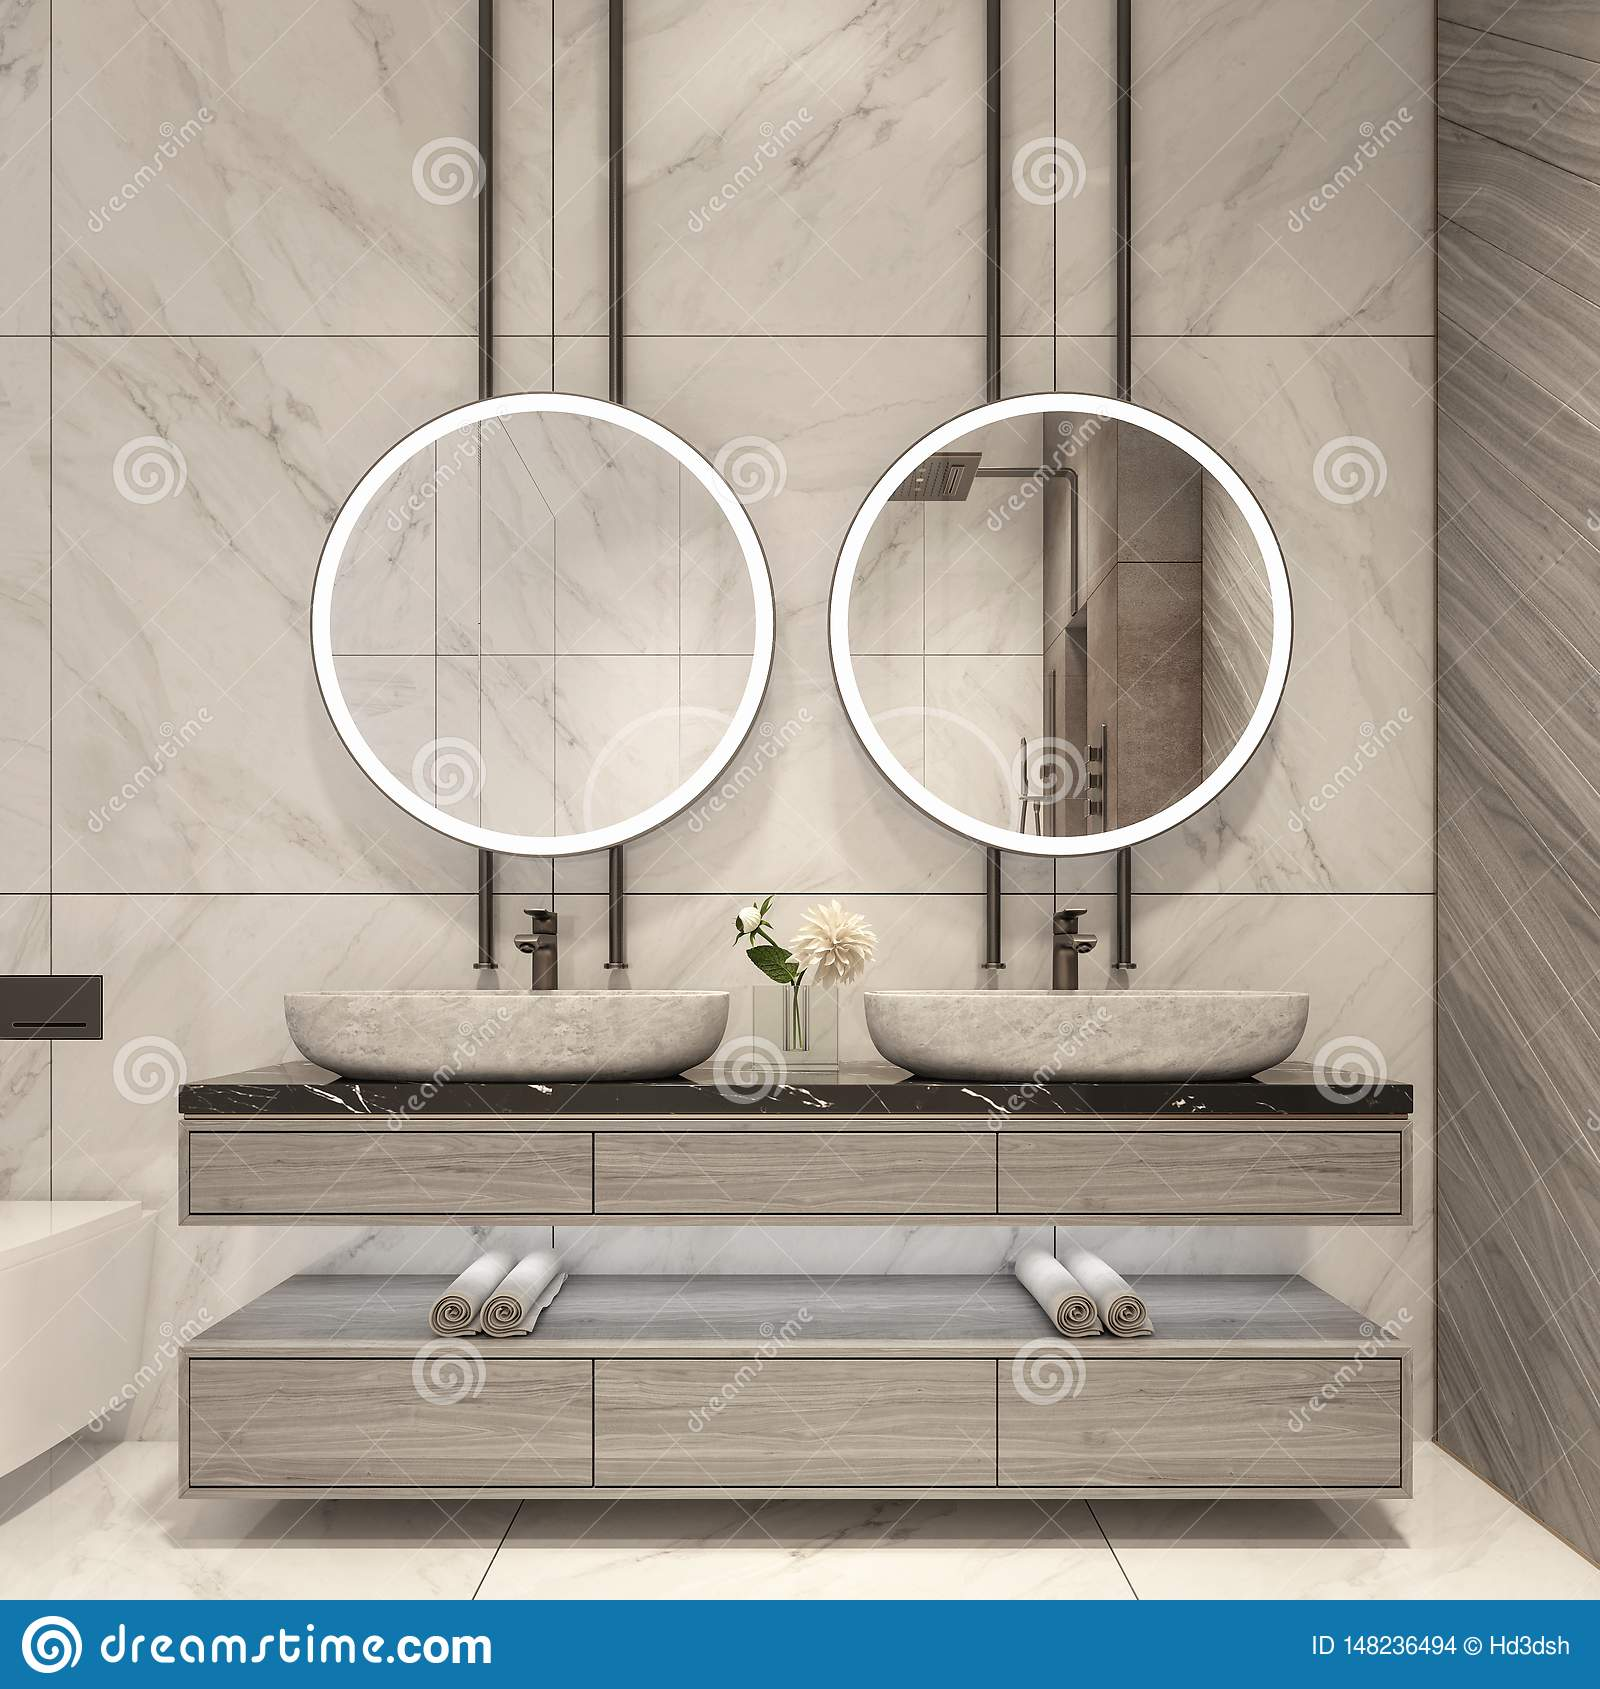 Modern Bathroom Design With White Marble Tiles Stock Photo Image Of Decoration Bathroom 148236494